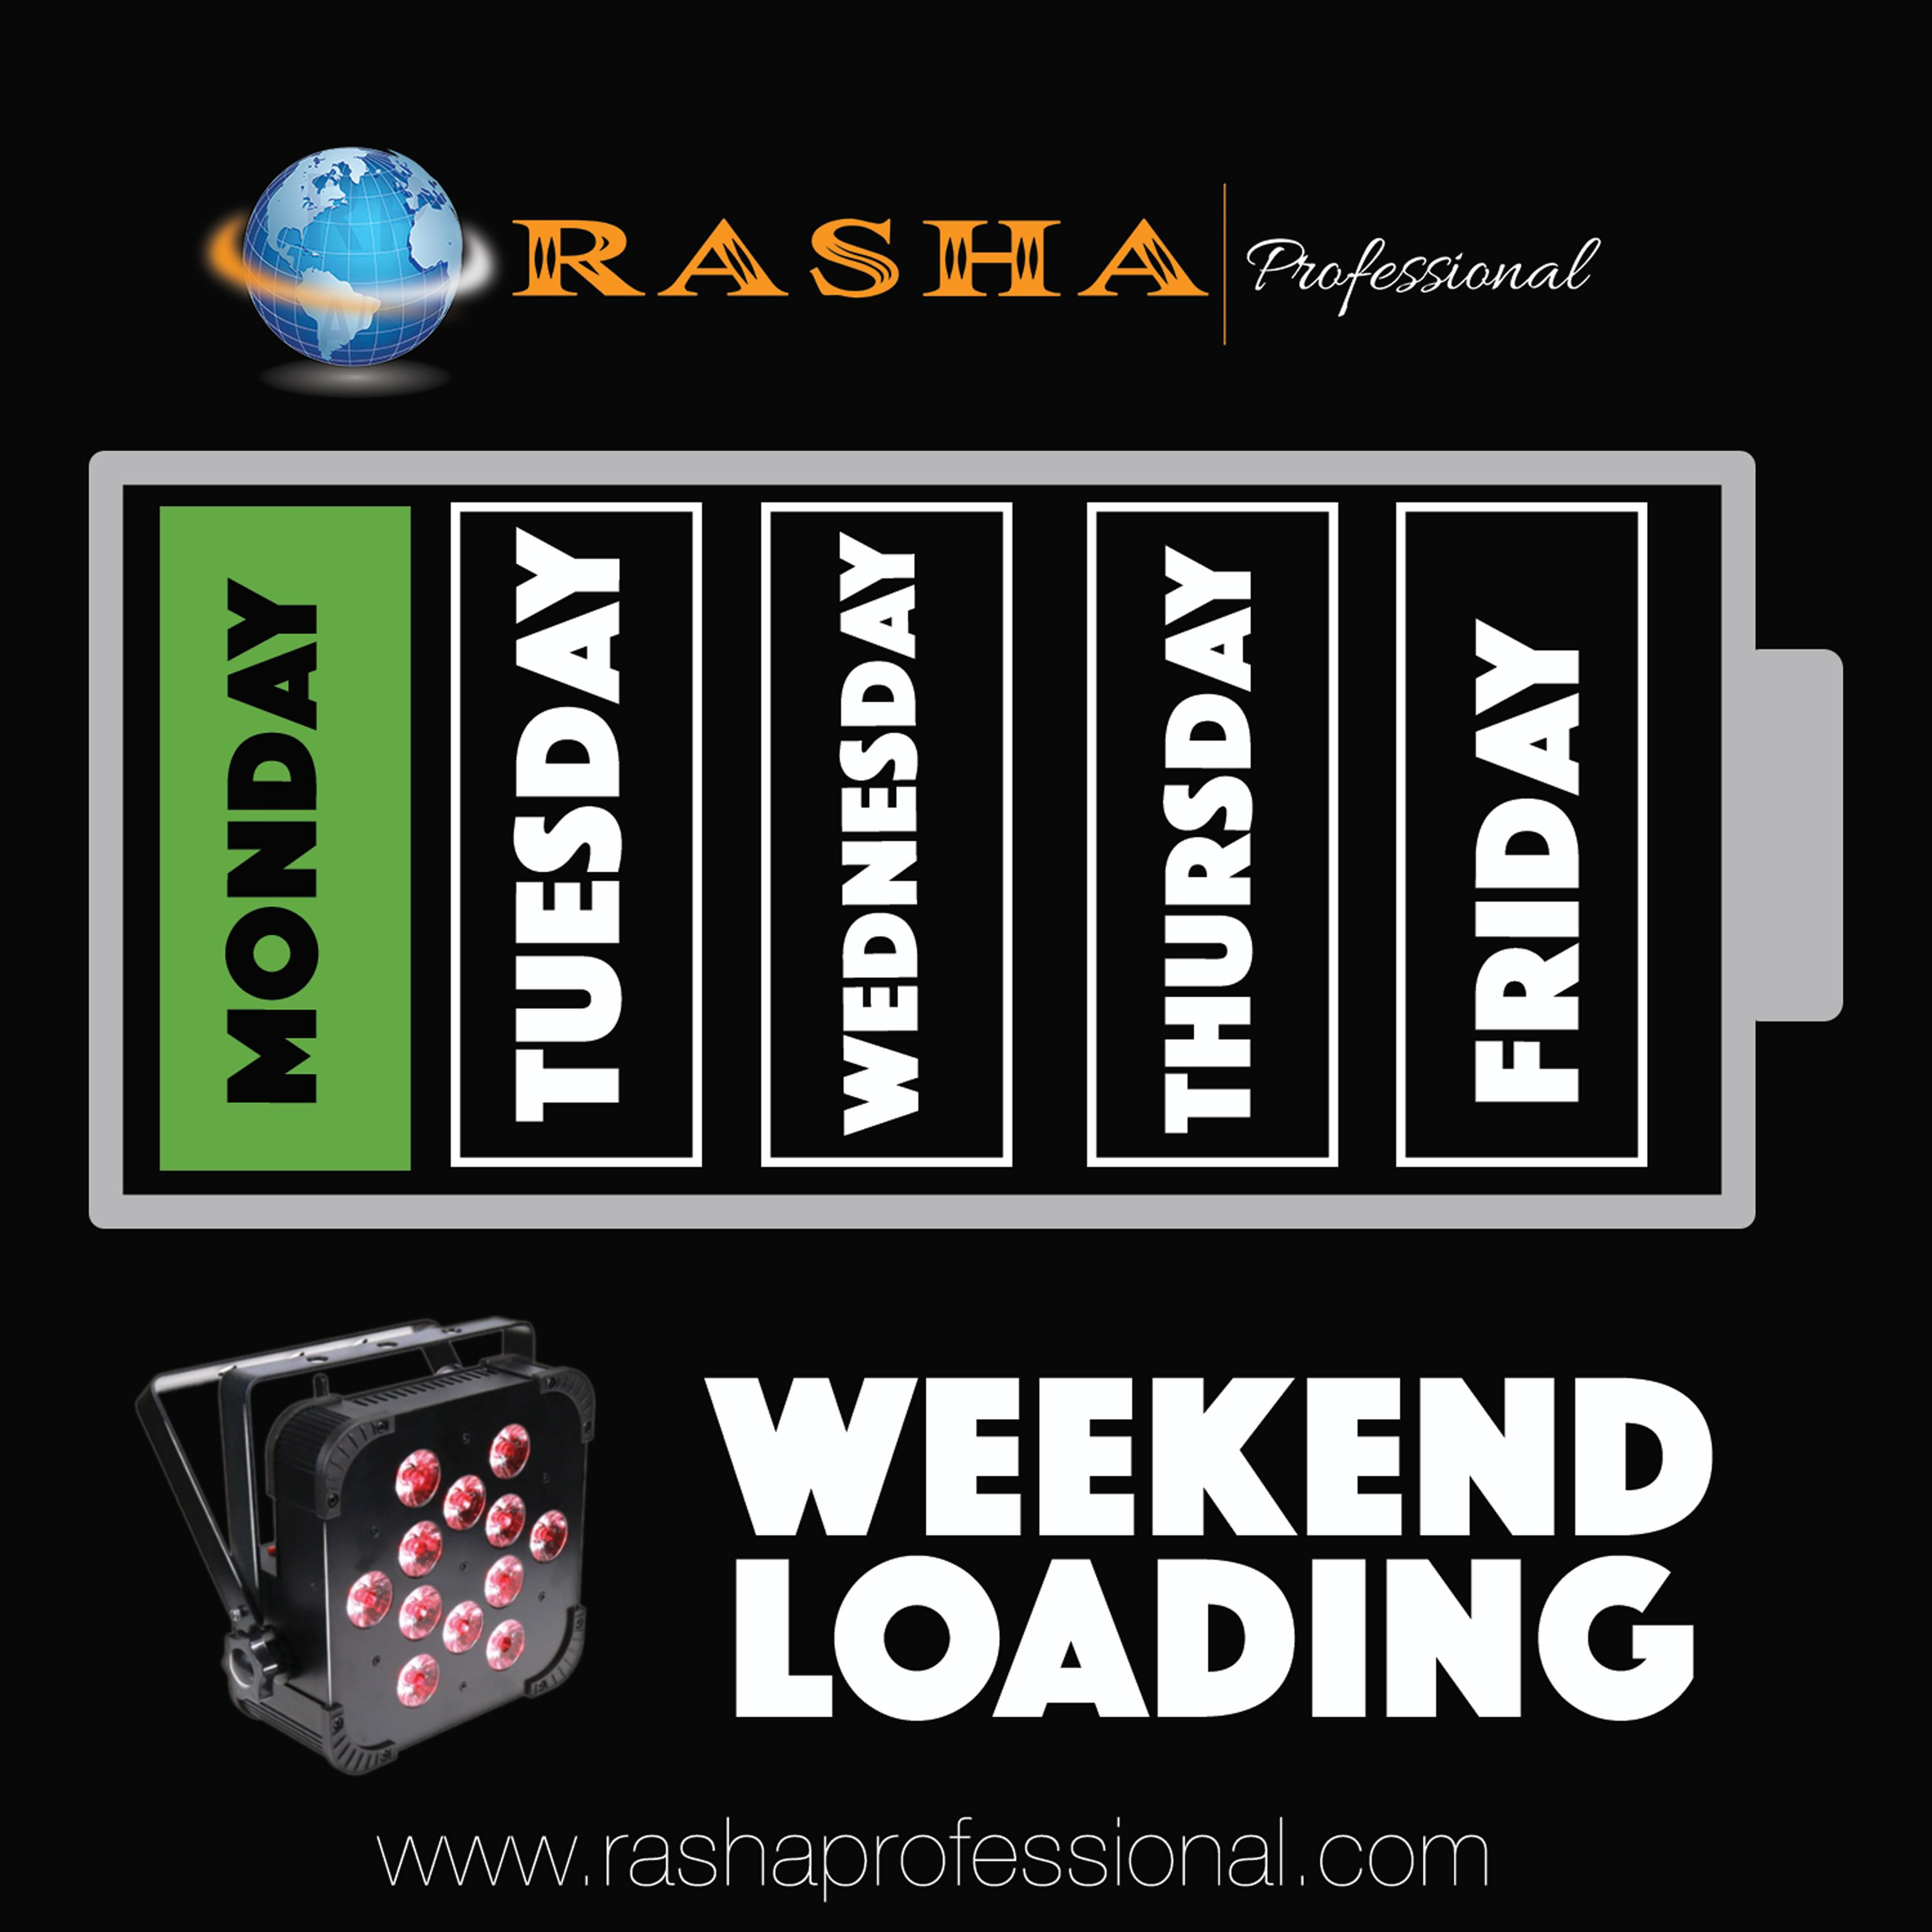 Weekend Reload  http://www.rashaprofessional.com  (951)654-3585  #rashaprofessional #rasha #light #color #RGBA #stage #namm #proud #member #lighting #events #lights #concerts #theater #letslightupyourworld #led #uplights #dj #party #clubs #architecture #landscape #music  #wedding